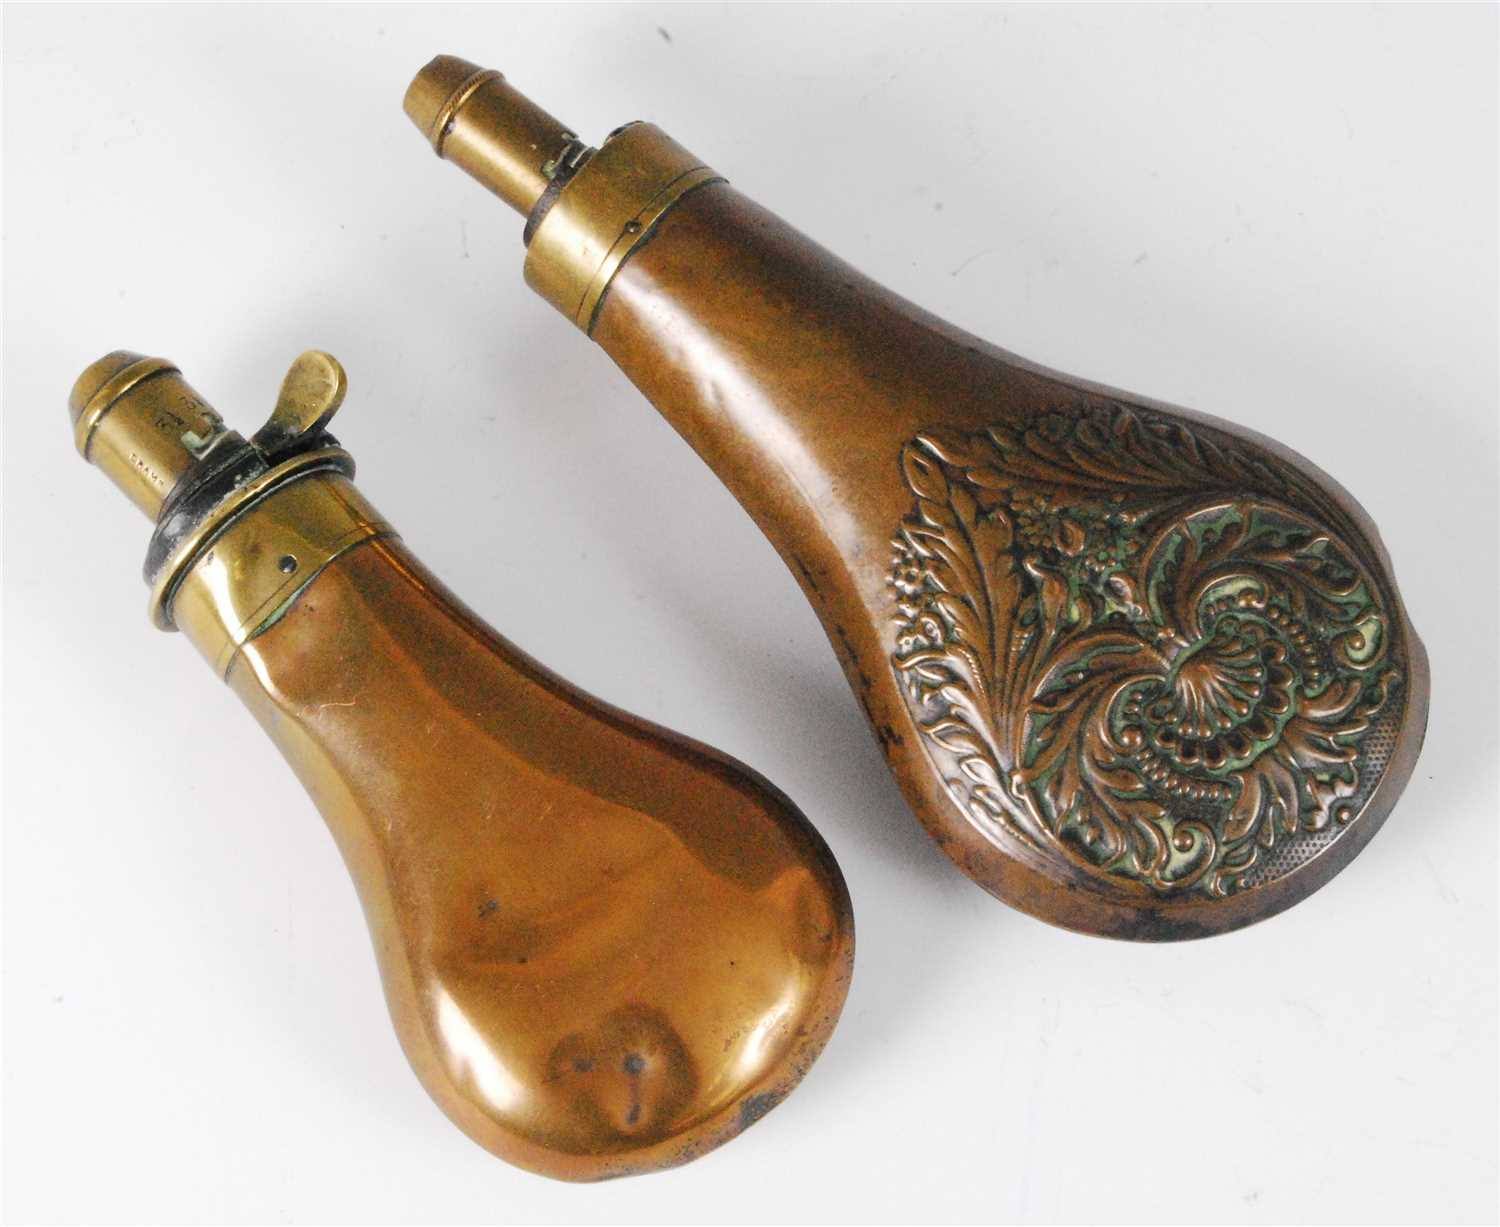 Lot 28-A 19th century copper powder flask